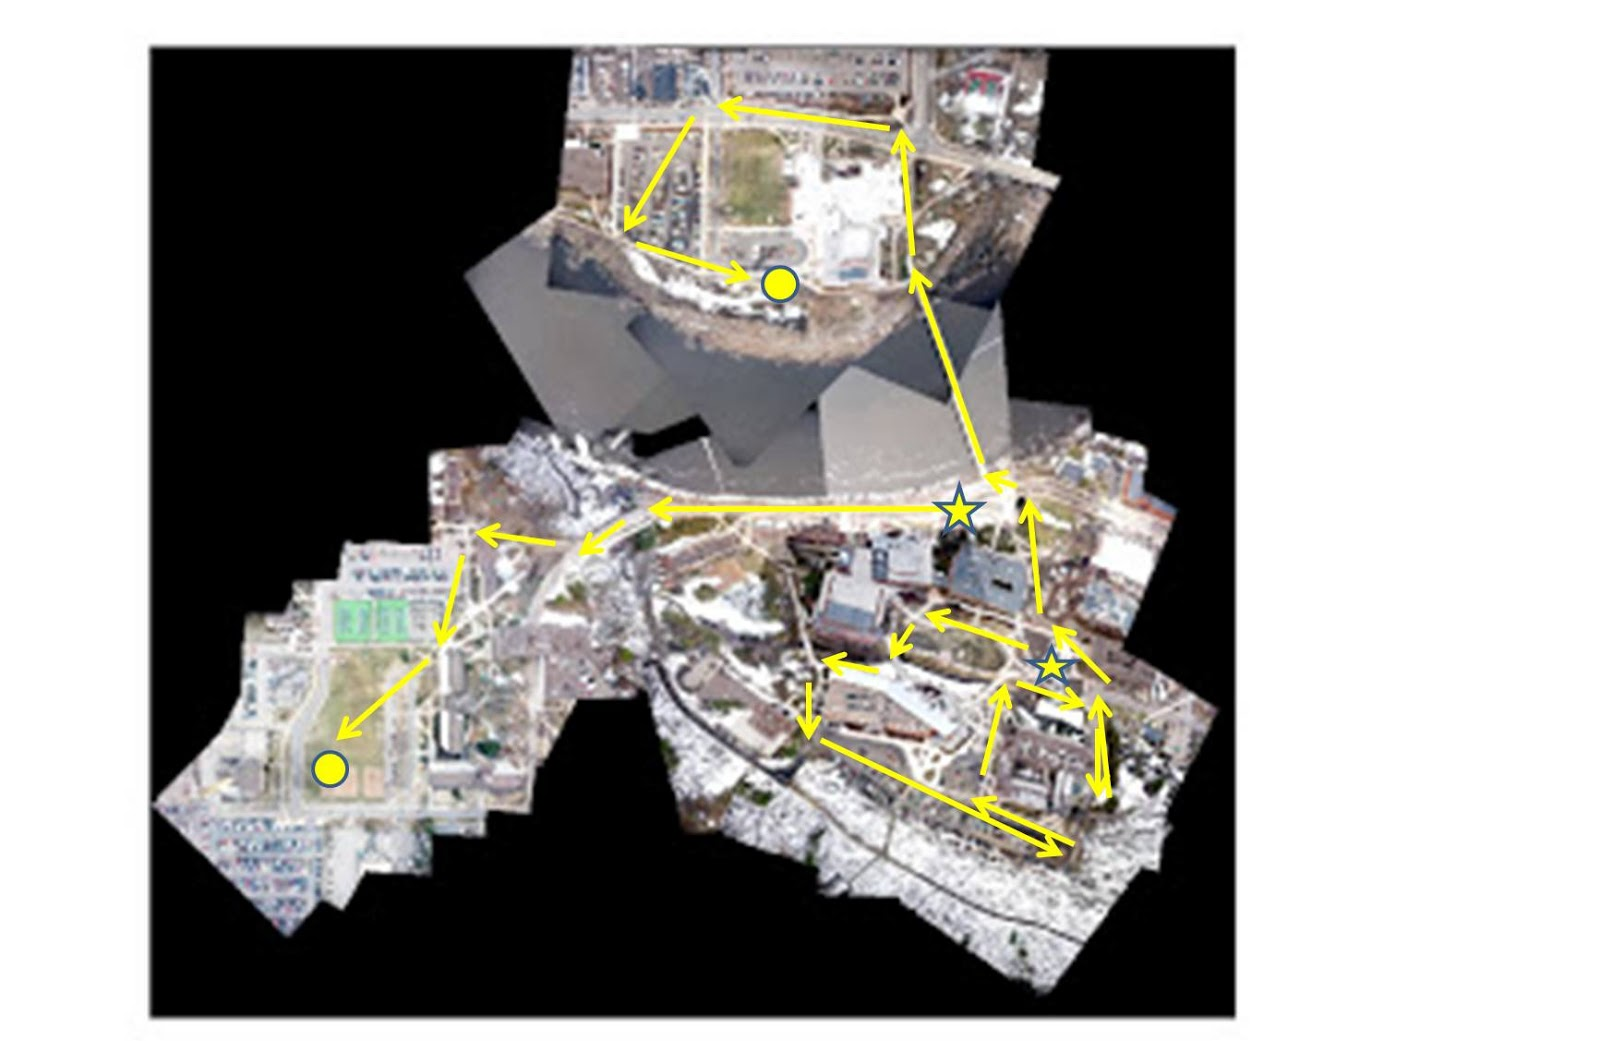 these are the routes we used to guide the mapping rig around campus the arrows are indicating the direction of travel